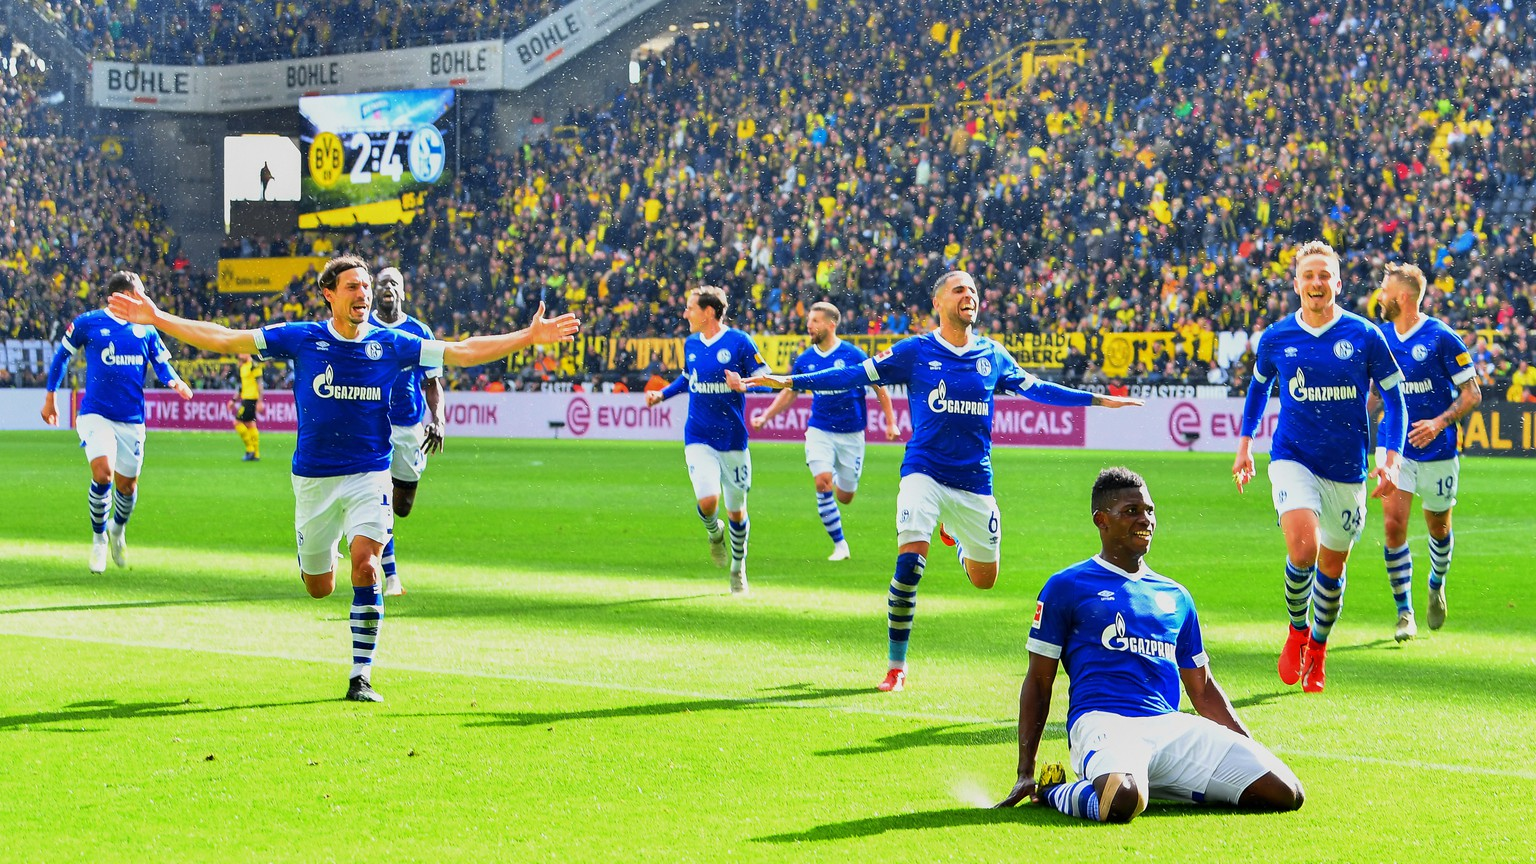 epa07532607 Schalke's Breel Embolo (front R) celebrates with his teammates after scoring the 4-2 lead during the German Bundesliga soccer match between Borussia Dortmund and FC Schalke 04 in Dortmund, Germany, 27 April 2019.  EPA/DAVID HECKER CONDITIONS - ATTENTION: The DFL regulations prohibit any use of photographs as image sequences and/or quasi-video.